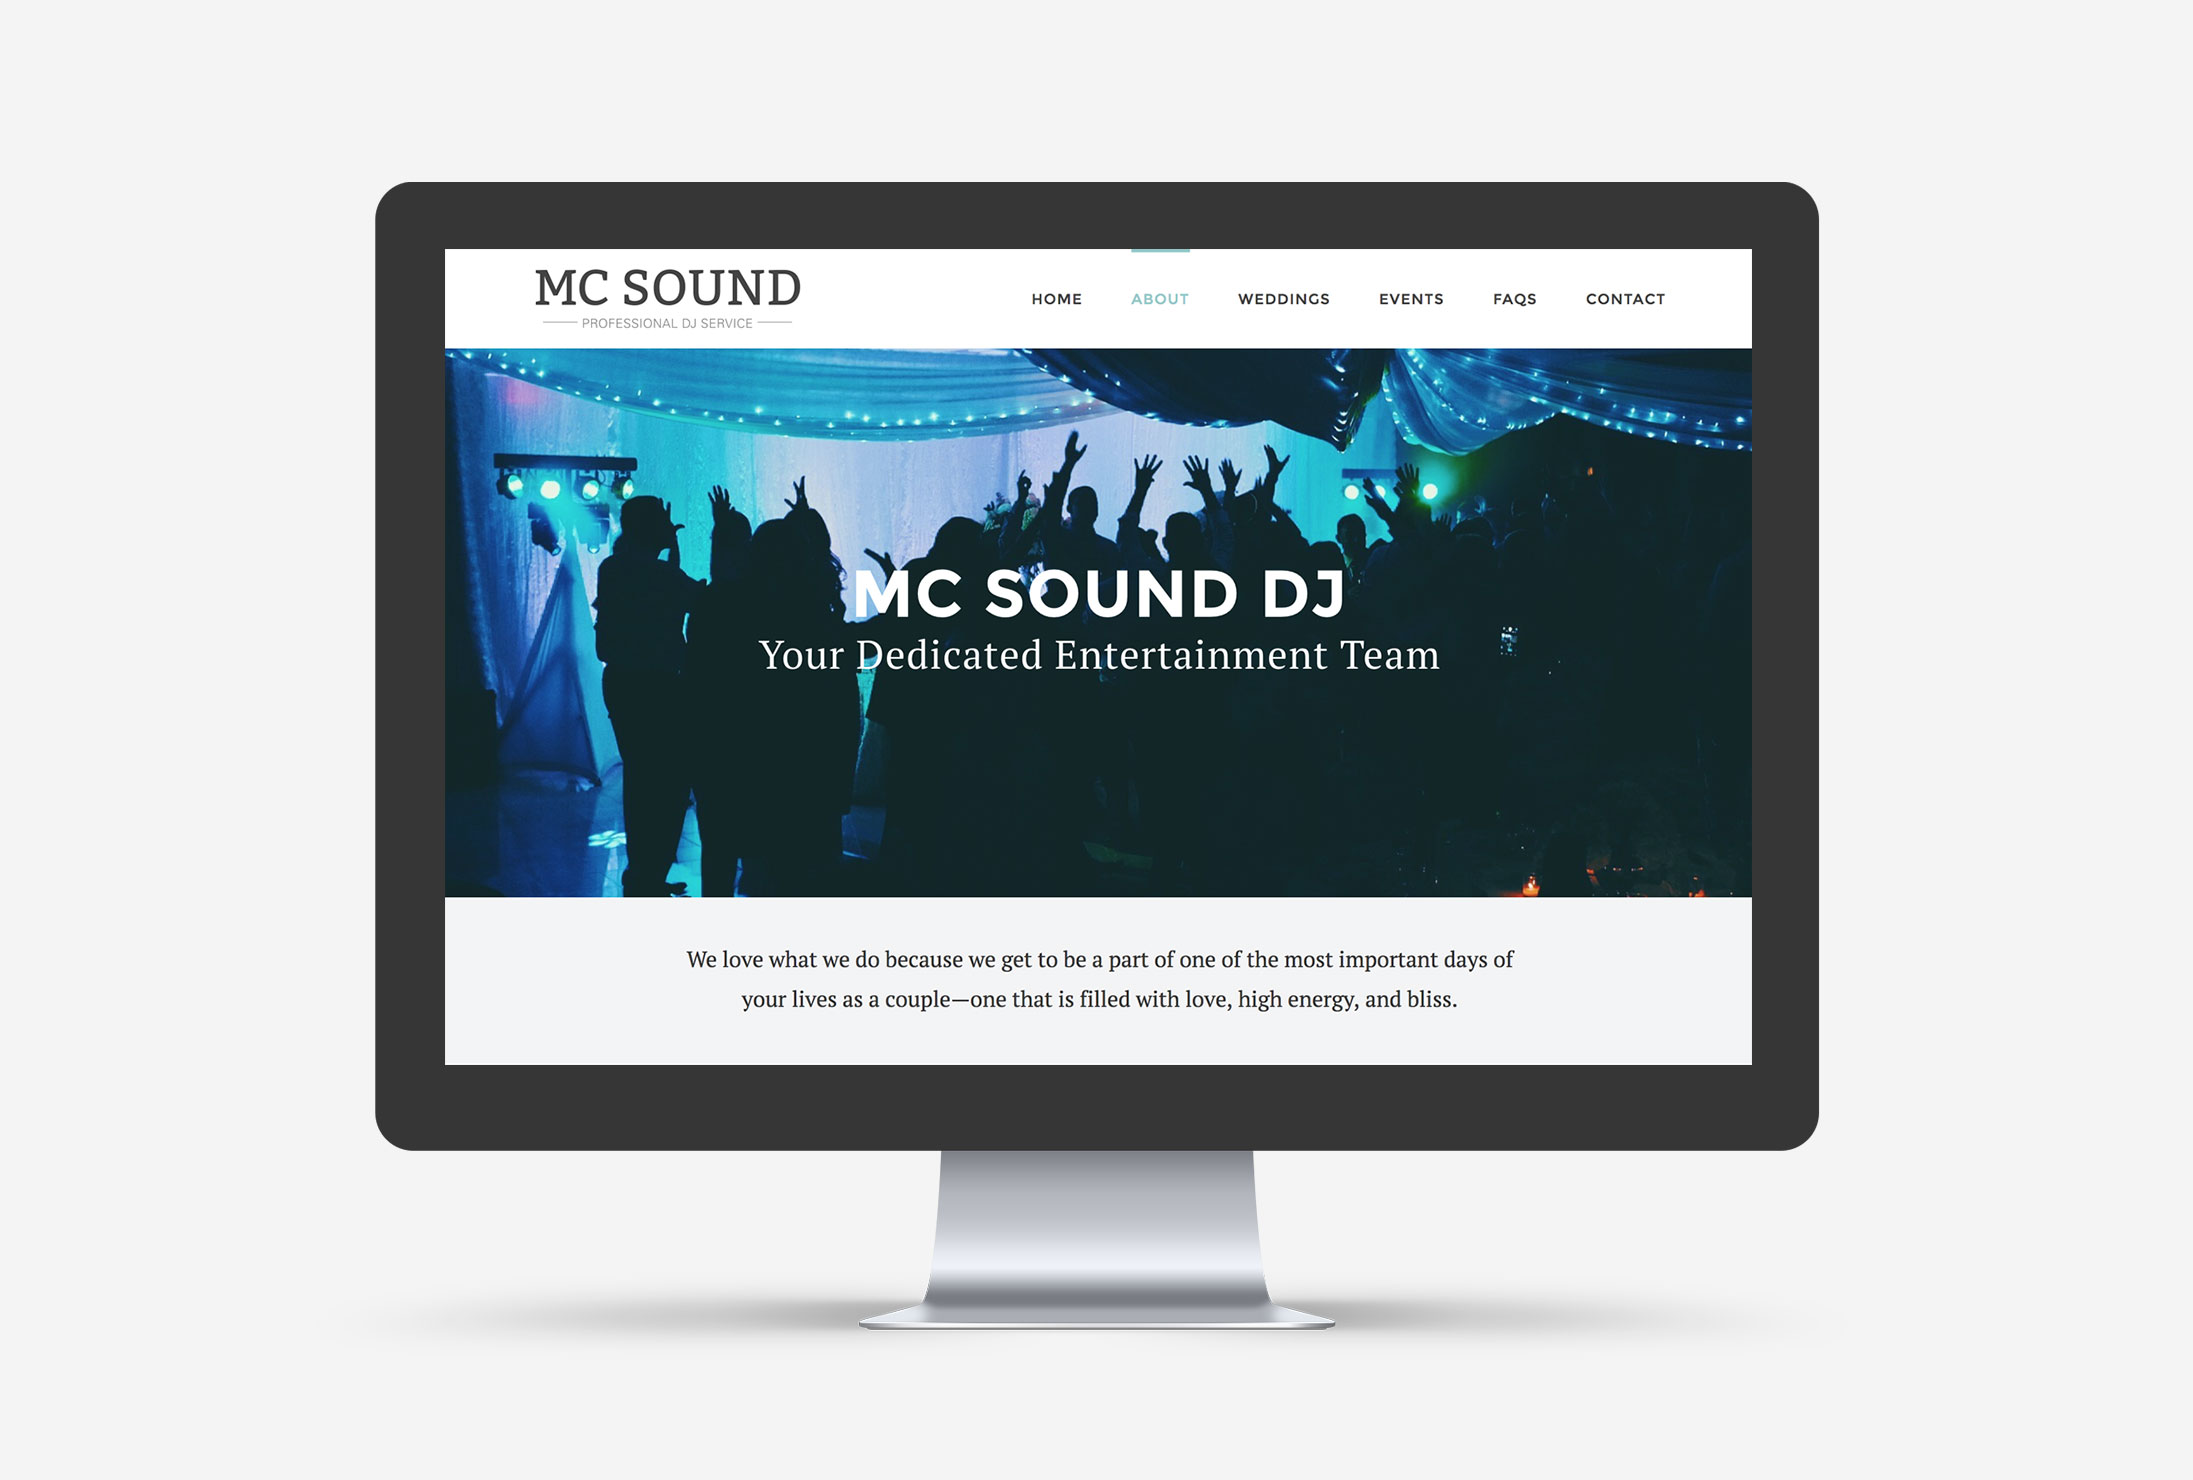 MC Sound DJ Small Business WordPress Web Design